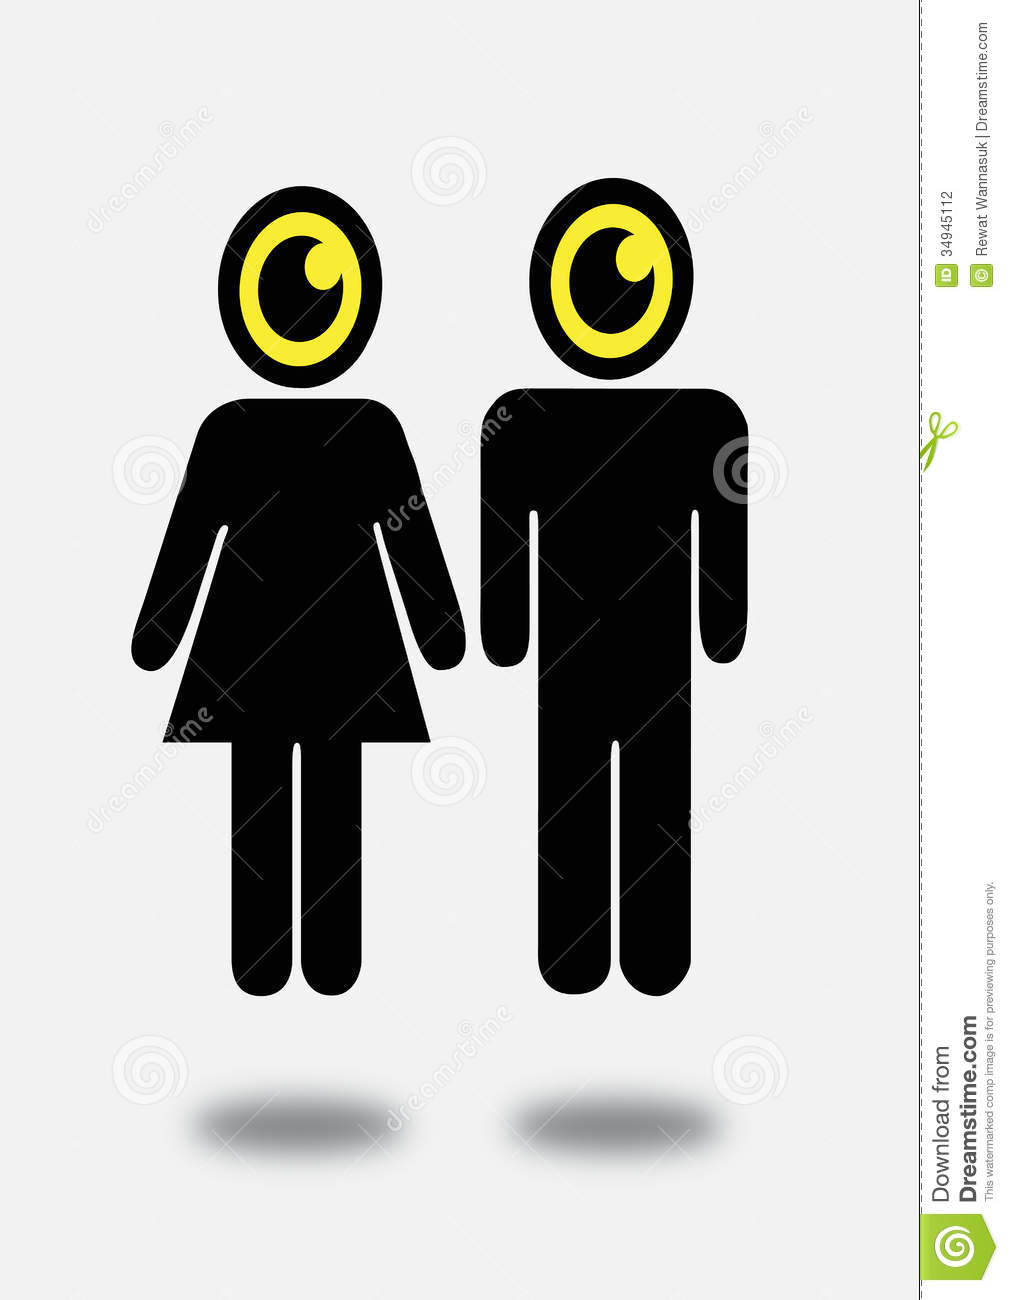 Character Design Icon : Eye icon character design stock photography image